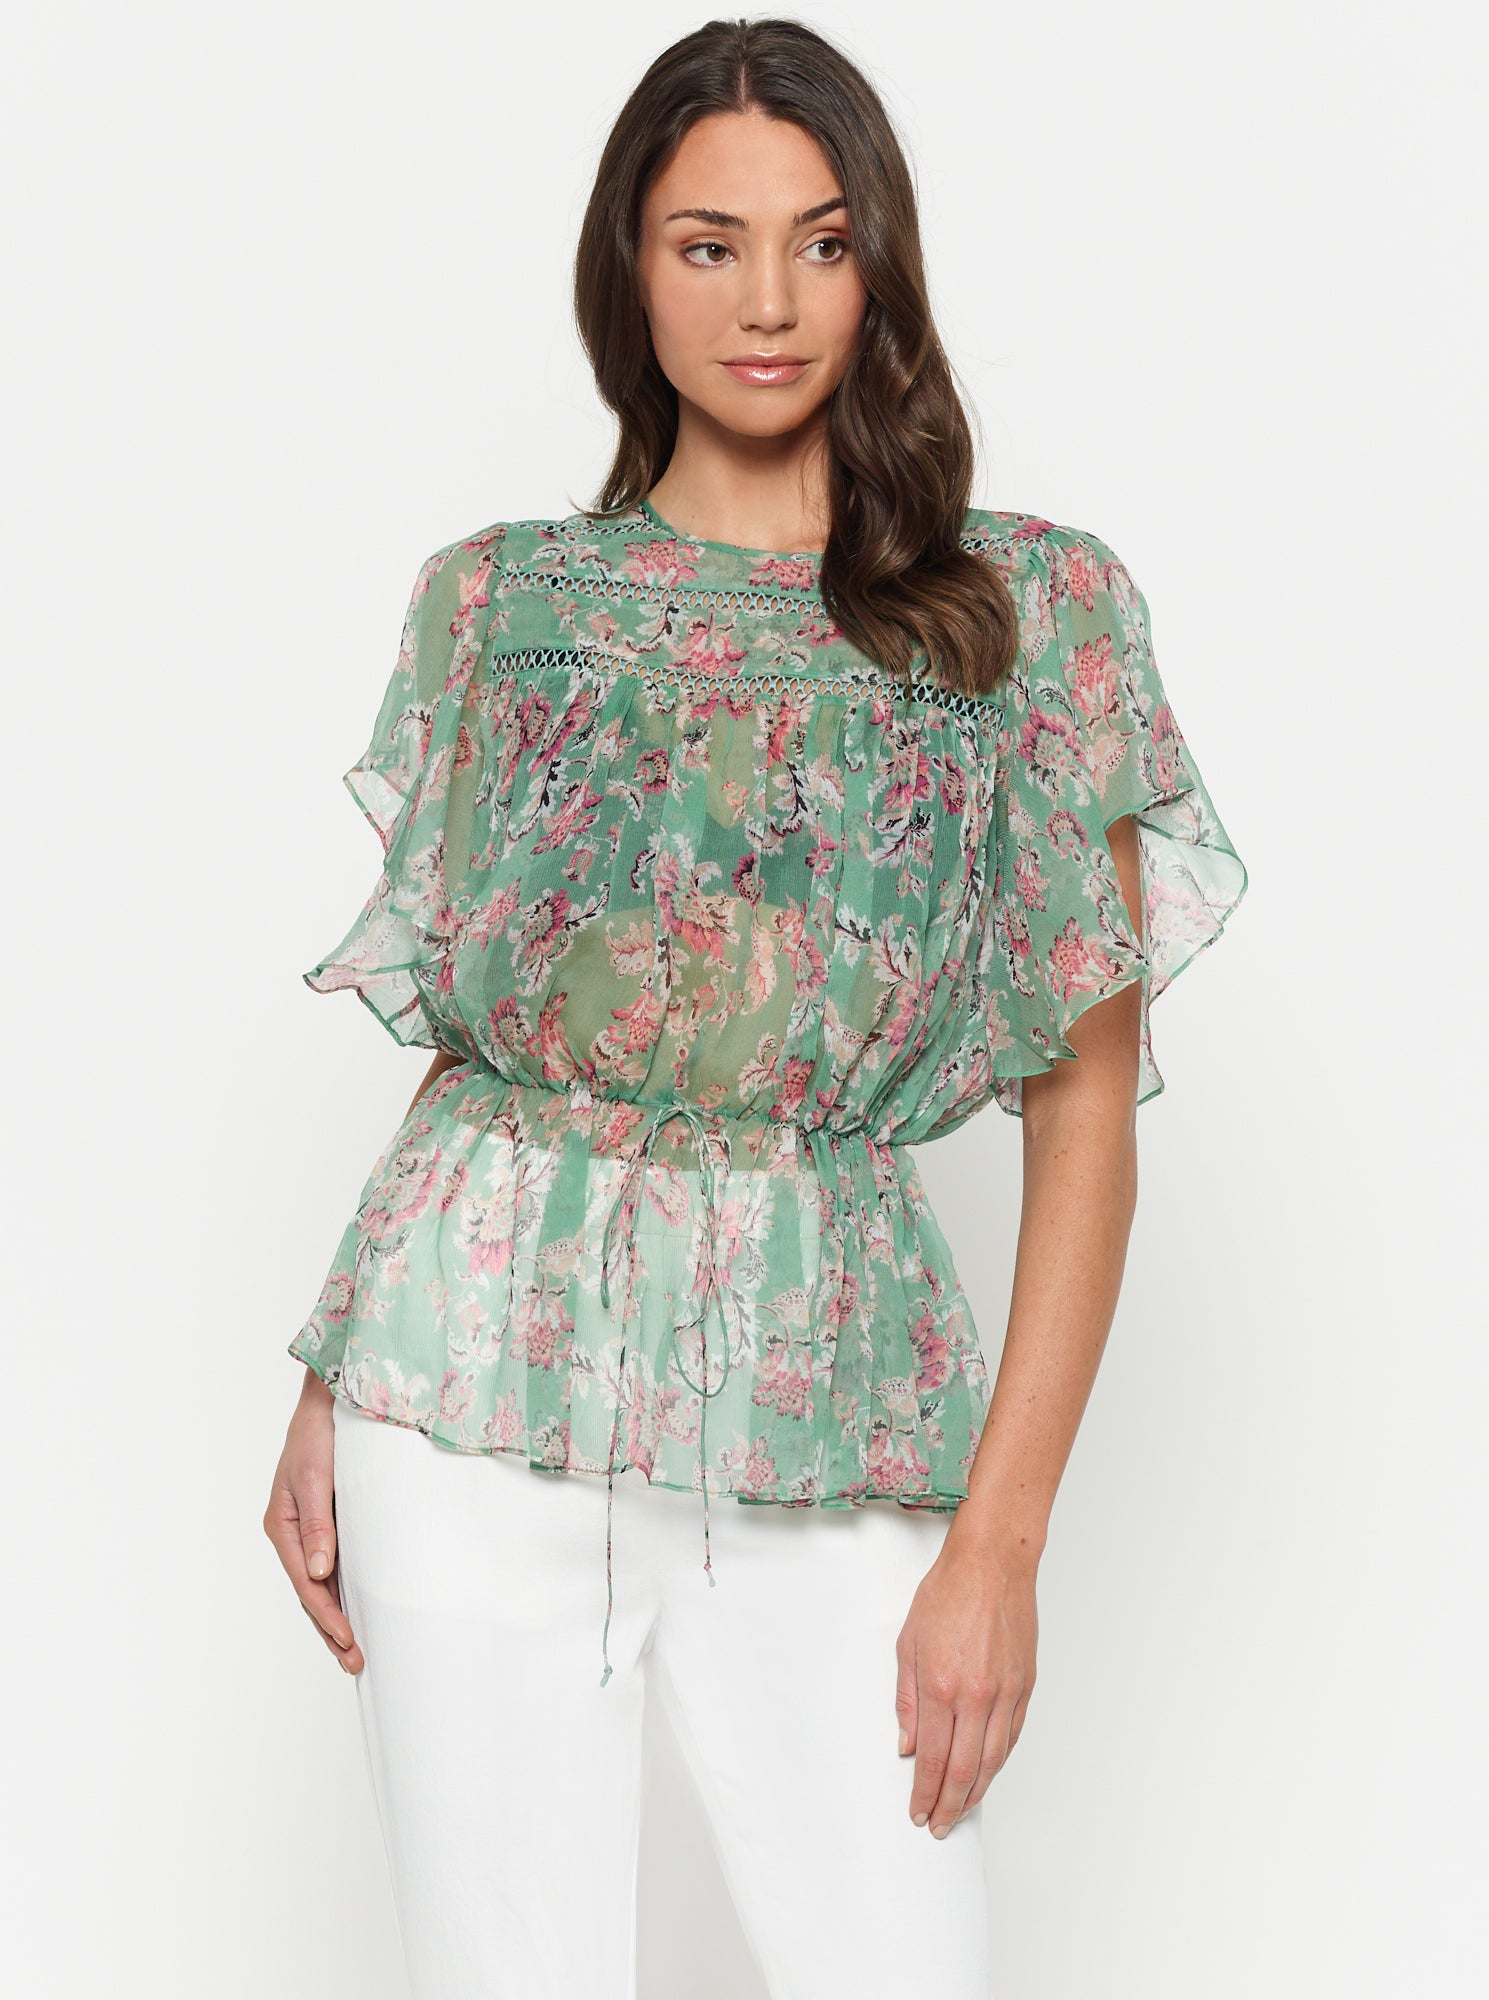 The Real You Silk Short Sleeve Top